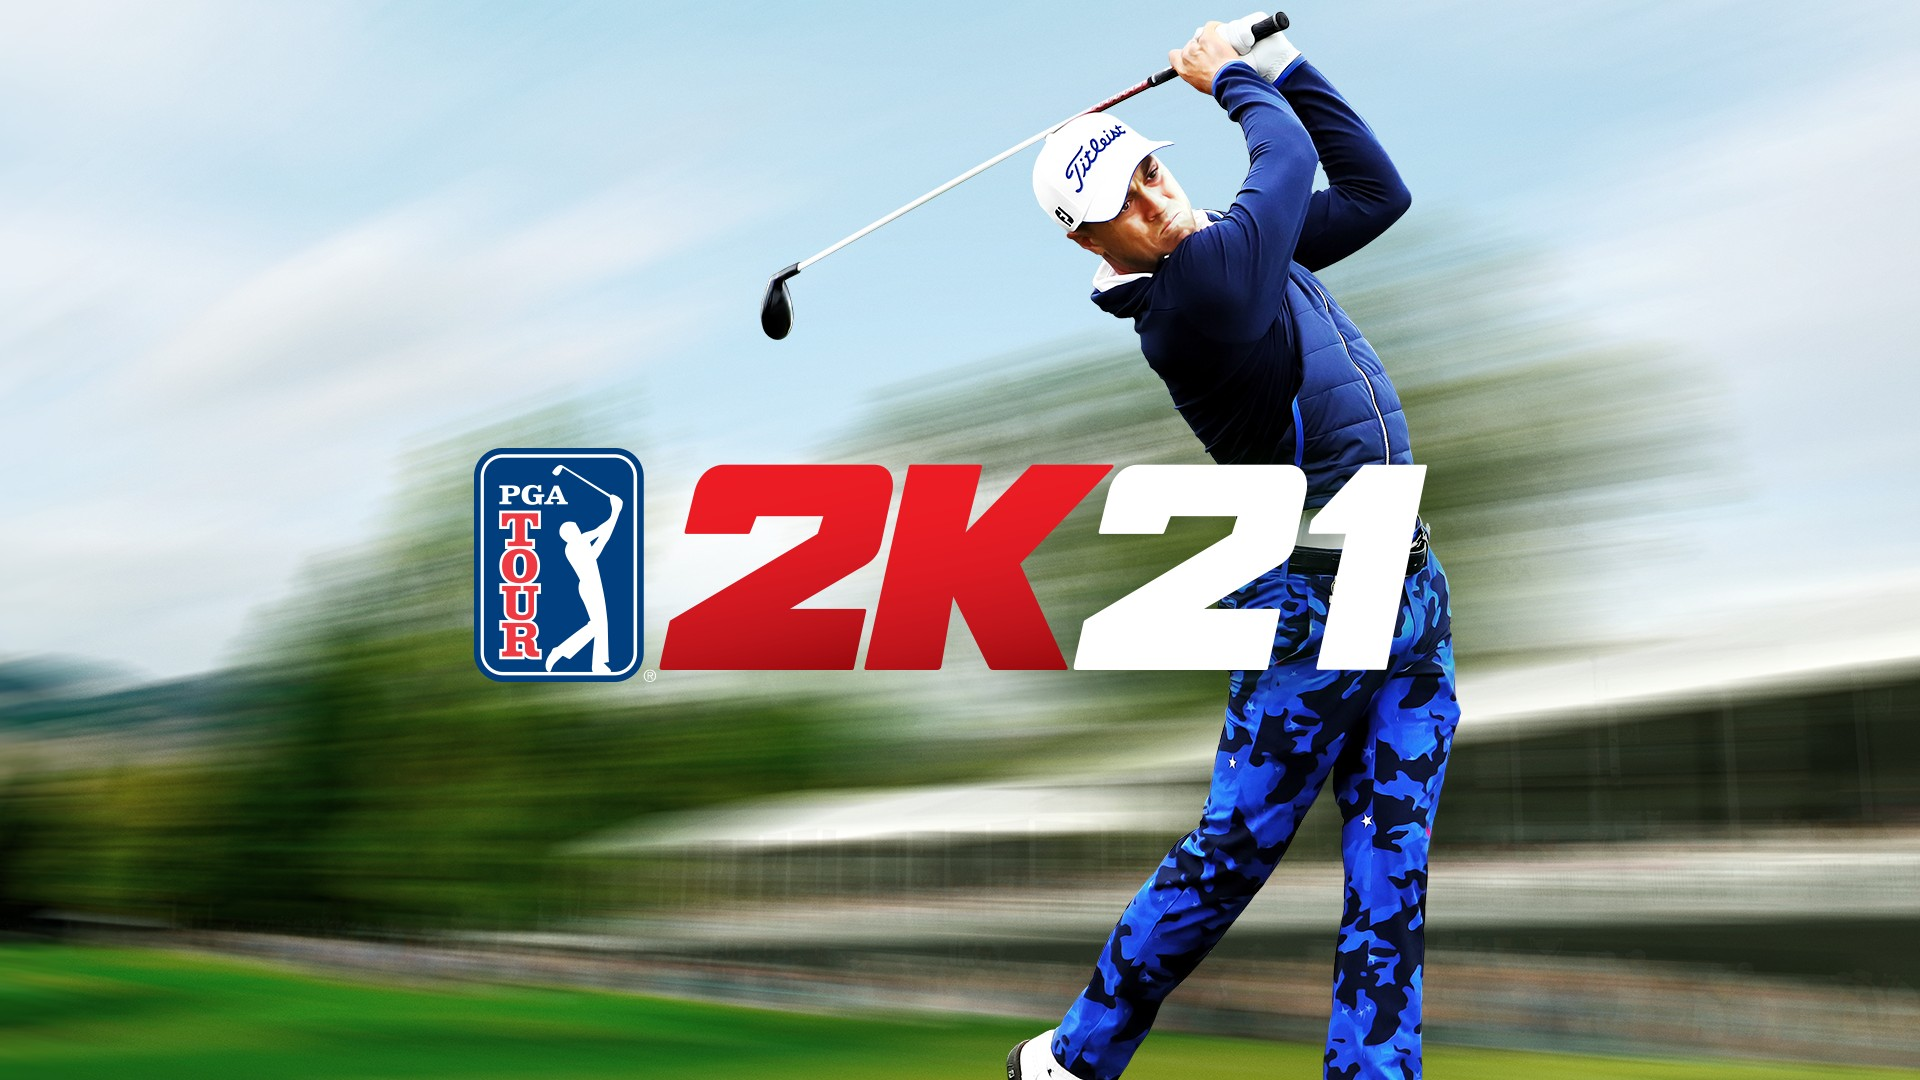 Video For Grab Your Clubs! PGA Tour 2K21 Drops on Xbox One August 21